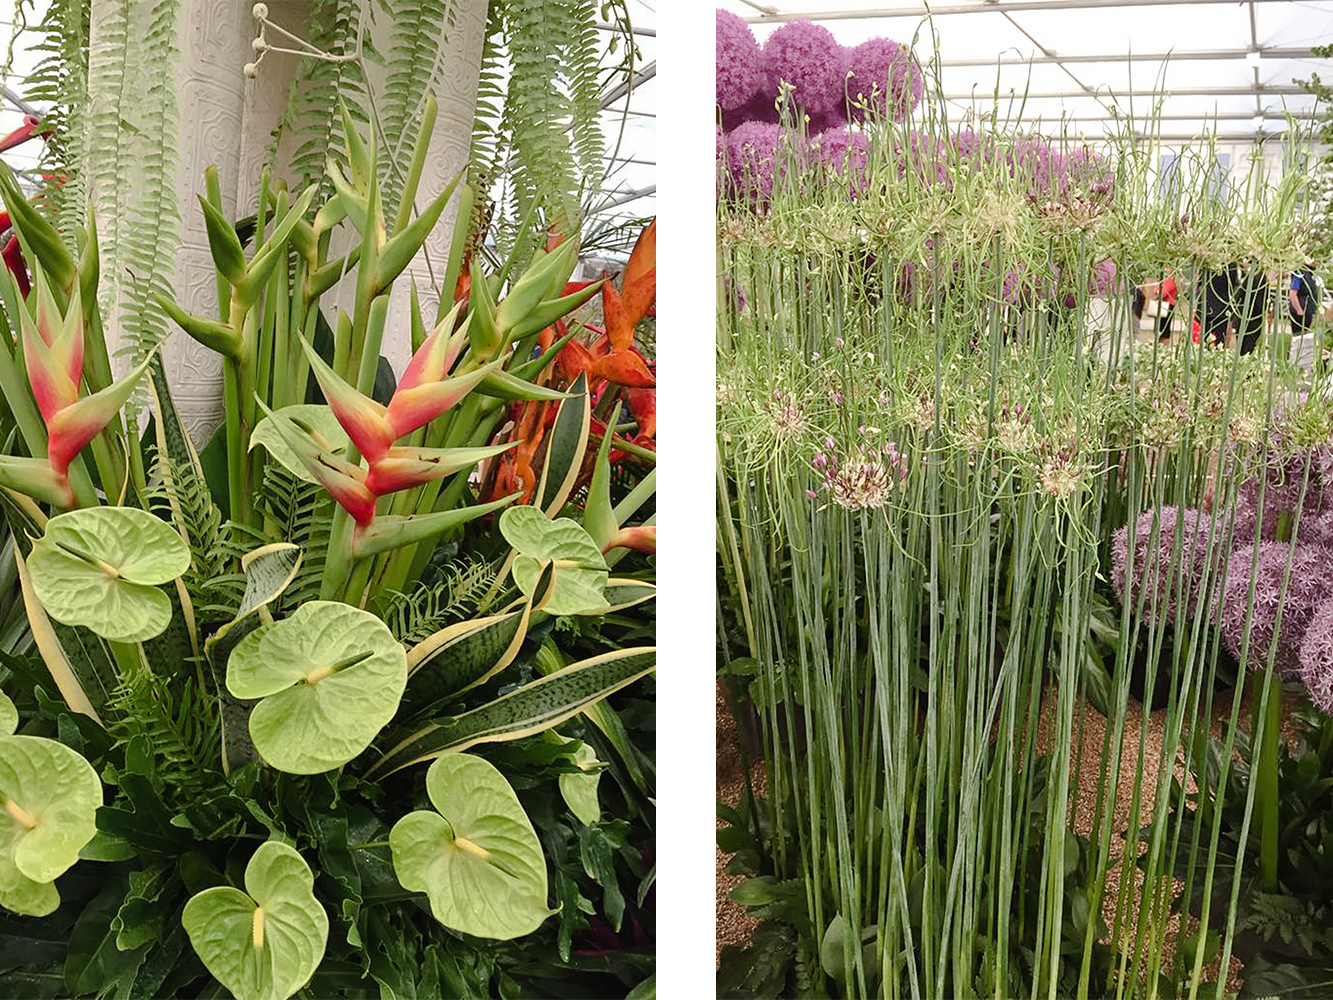 Sorrento Events team visit the Chelsea Flower Show 2017